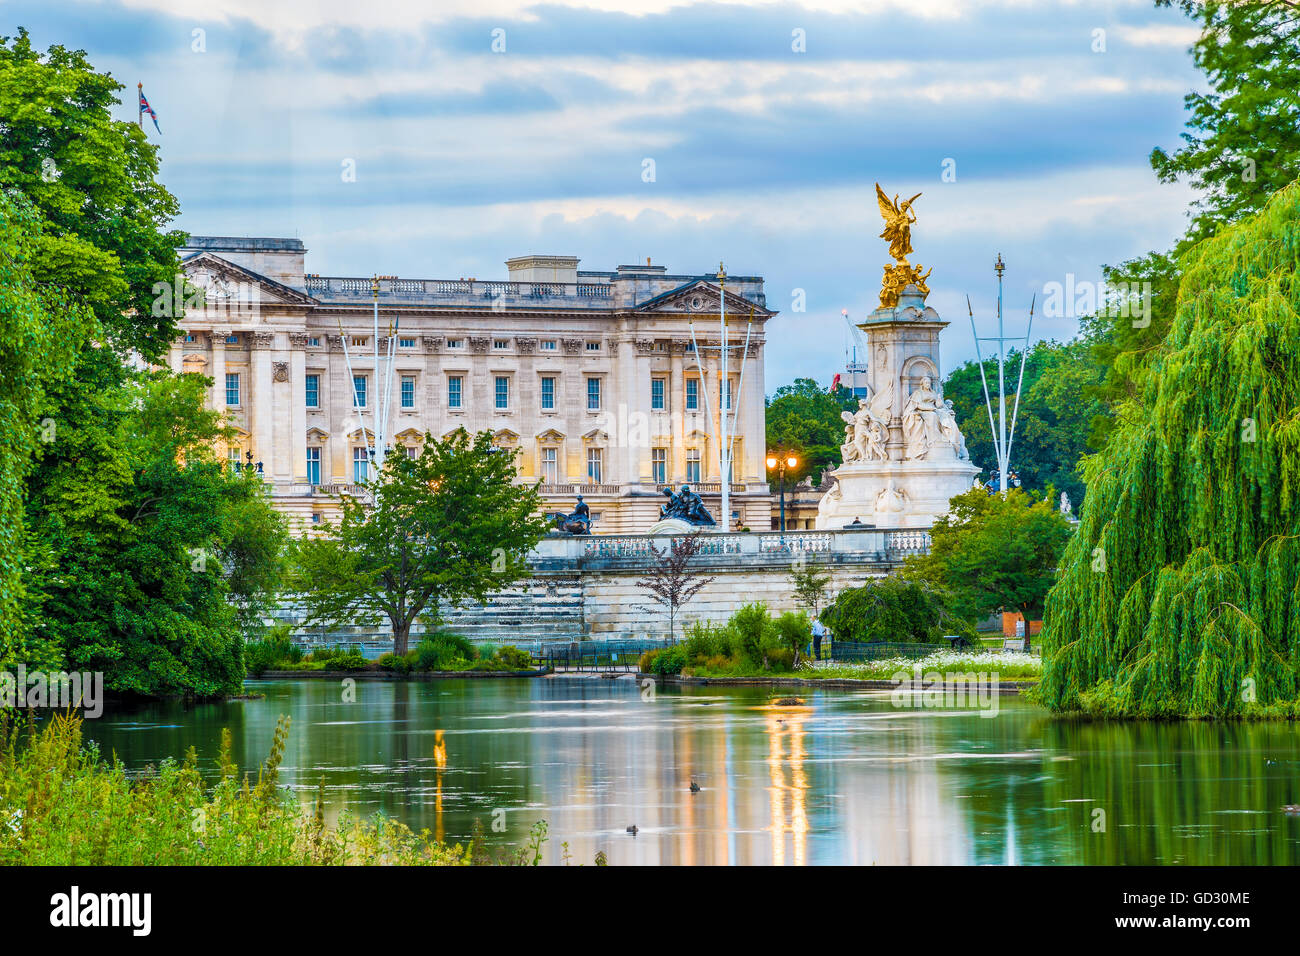 Le palais de Buckingham vu de St James Park à Londres Photo Stock